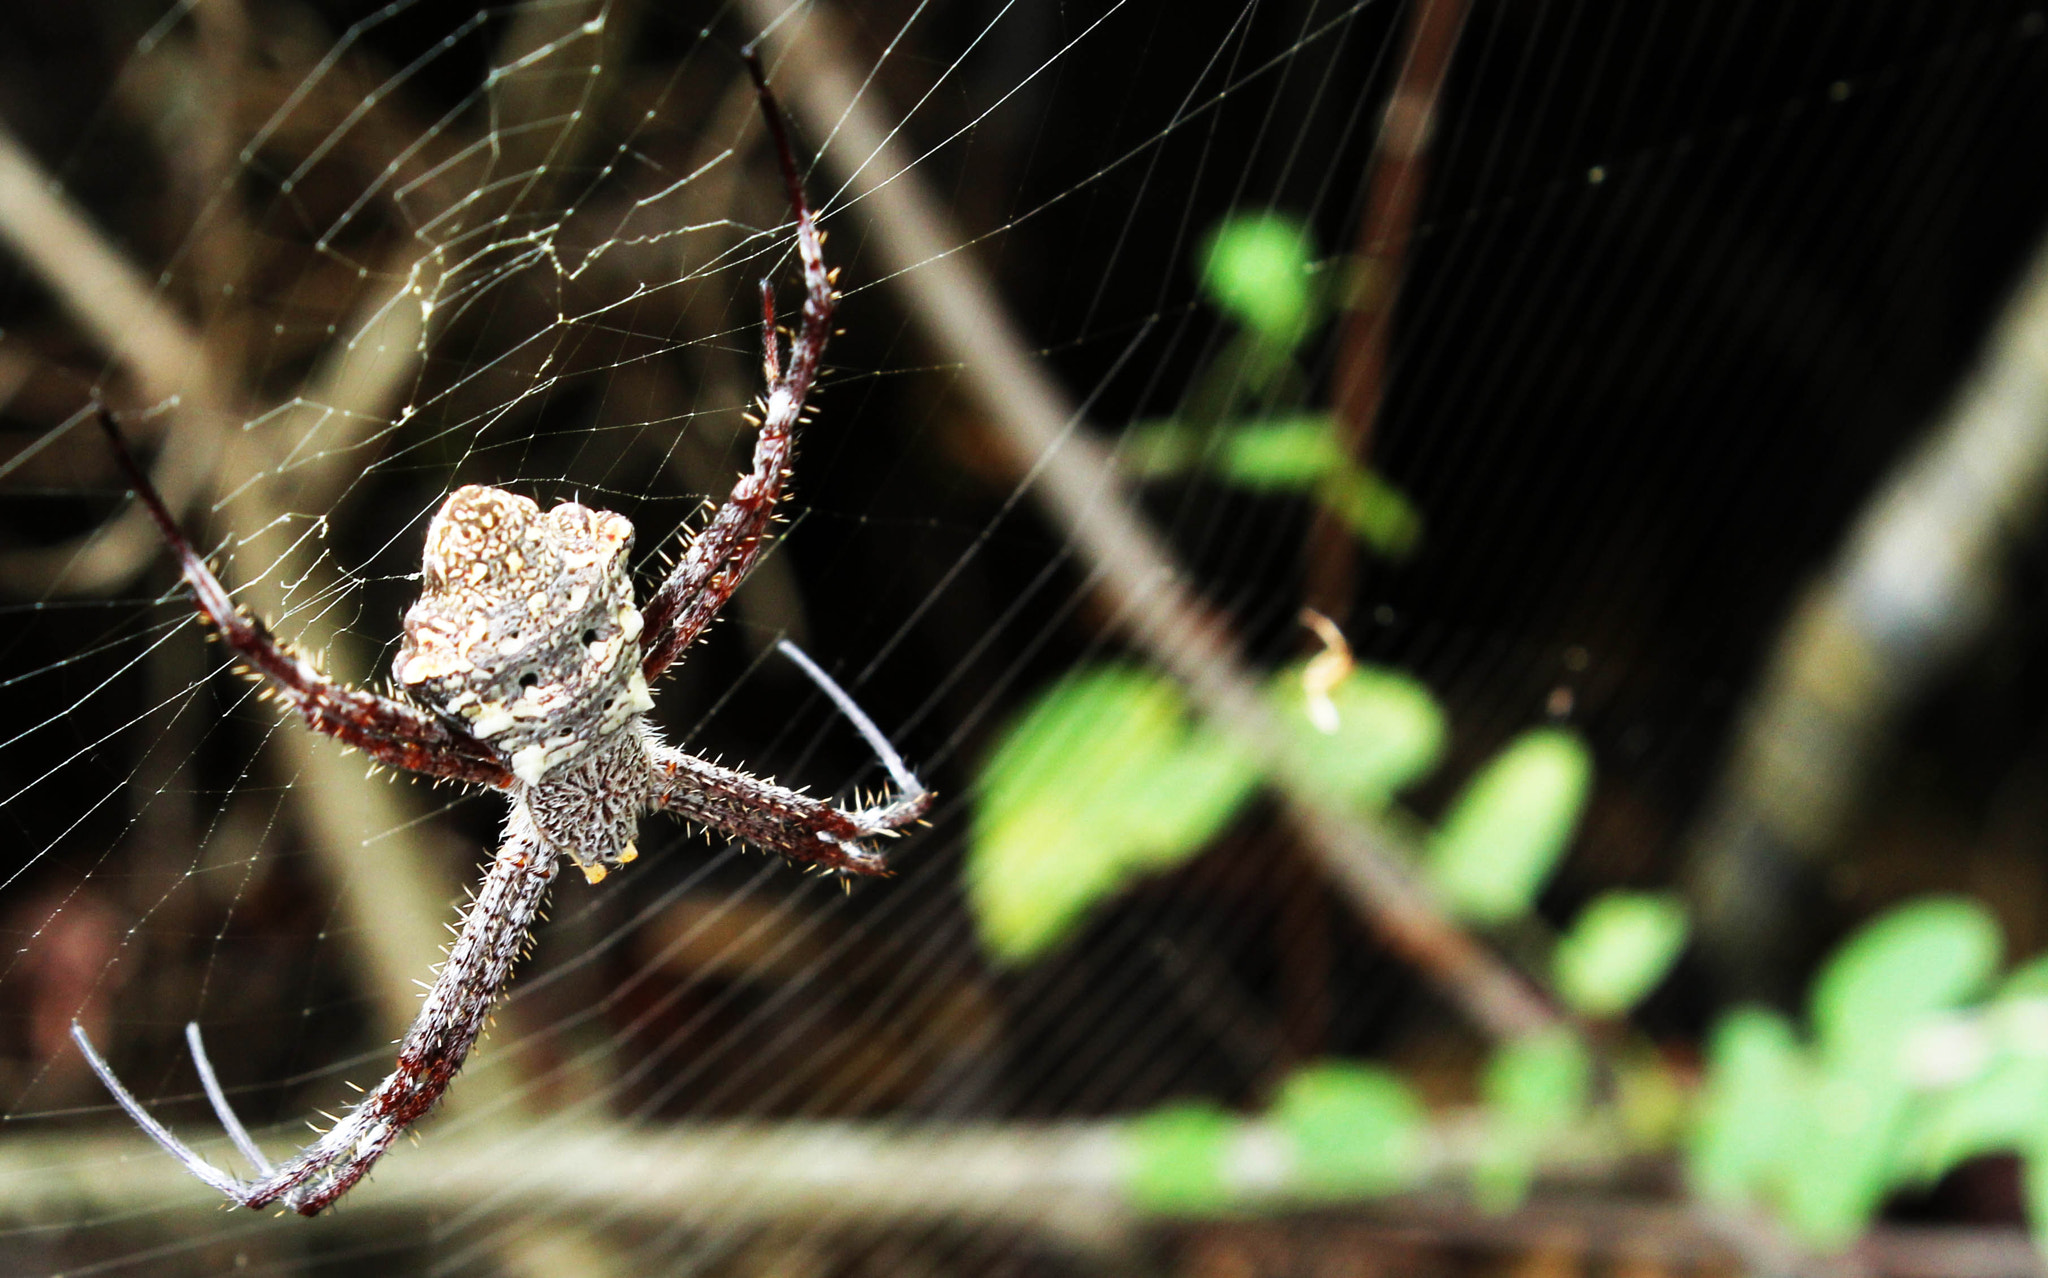 Photograph Spider by Yosua A Linata on 500px